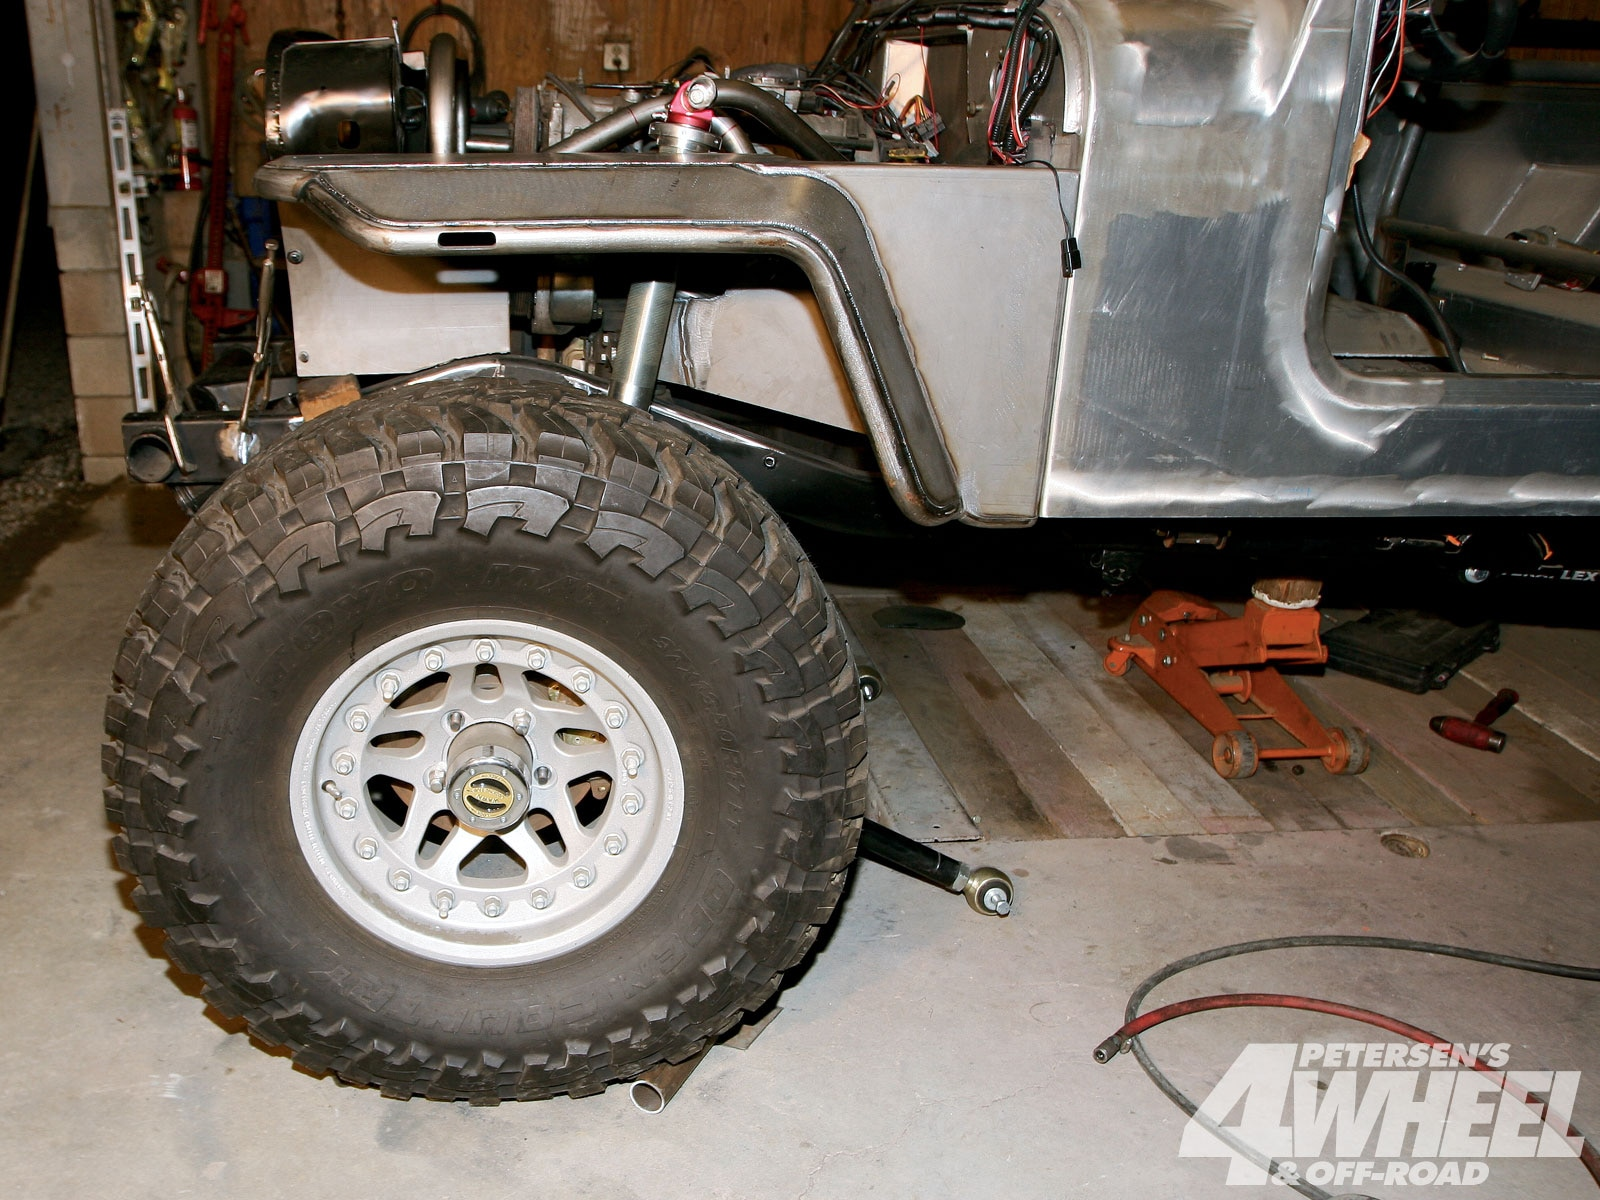 131 1005 06+jeep cj8 scrambler rock fenders suspension+wheel base